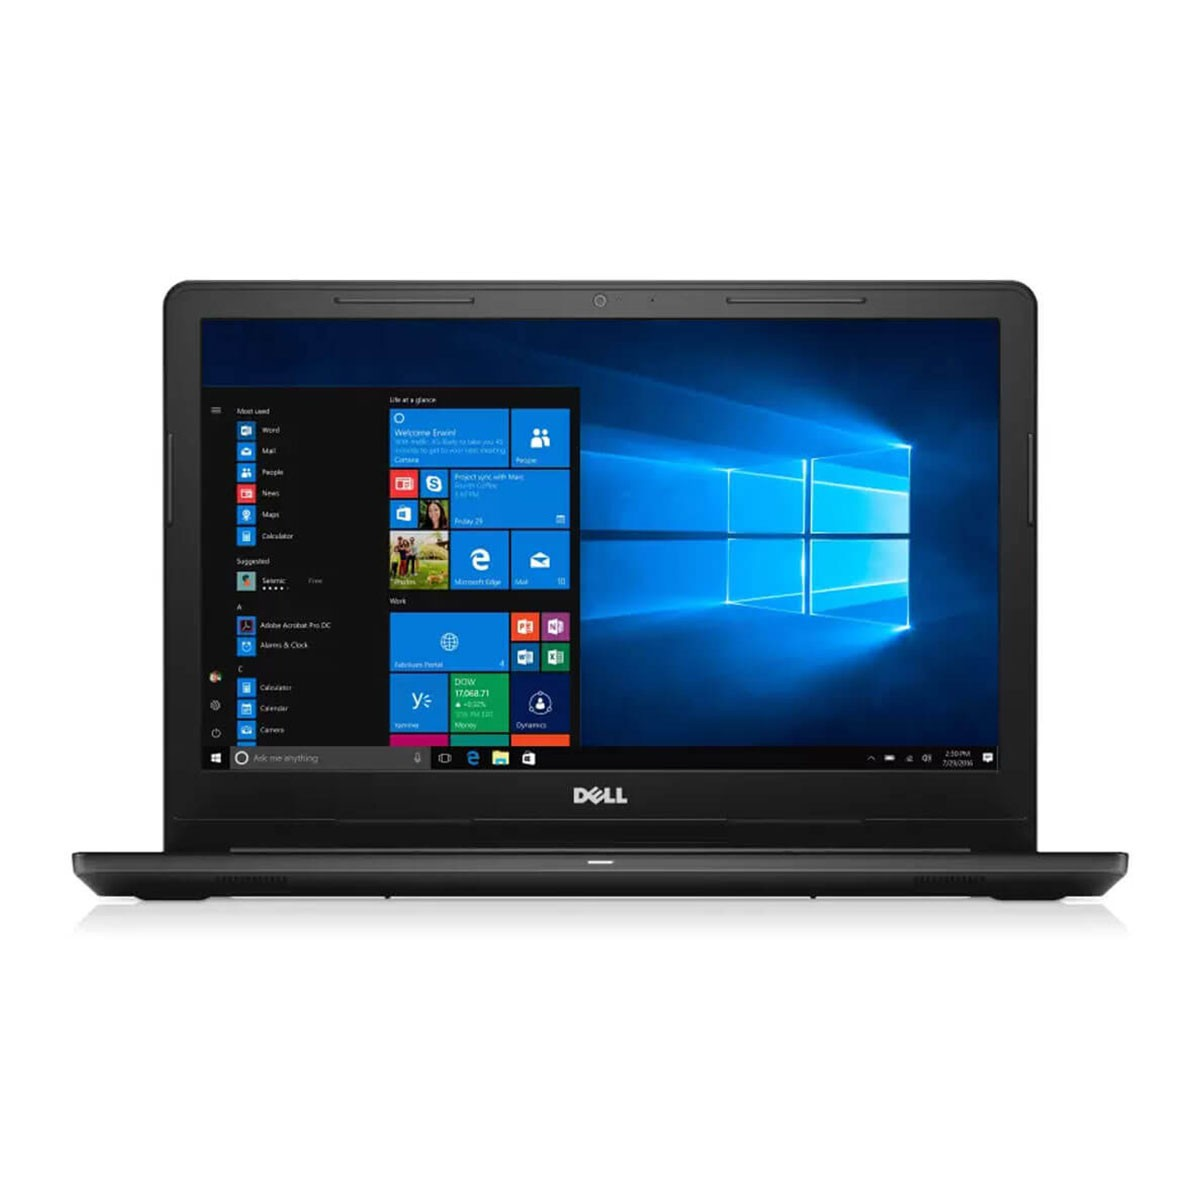 DELL REFURBISHED INSPIRON 13 7350/ 5th Gen Ci5-5200U/ 8GB/ 500GB/ INT/ WIN 10/ 13.3-Inch FHD Touch